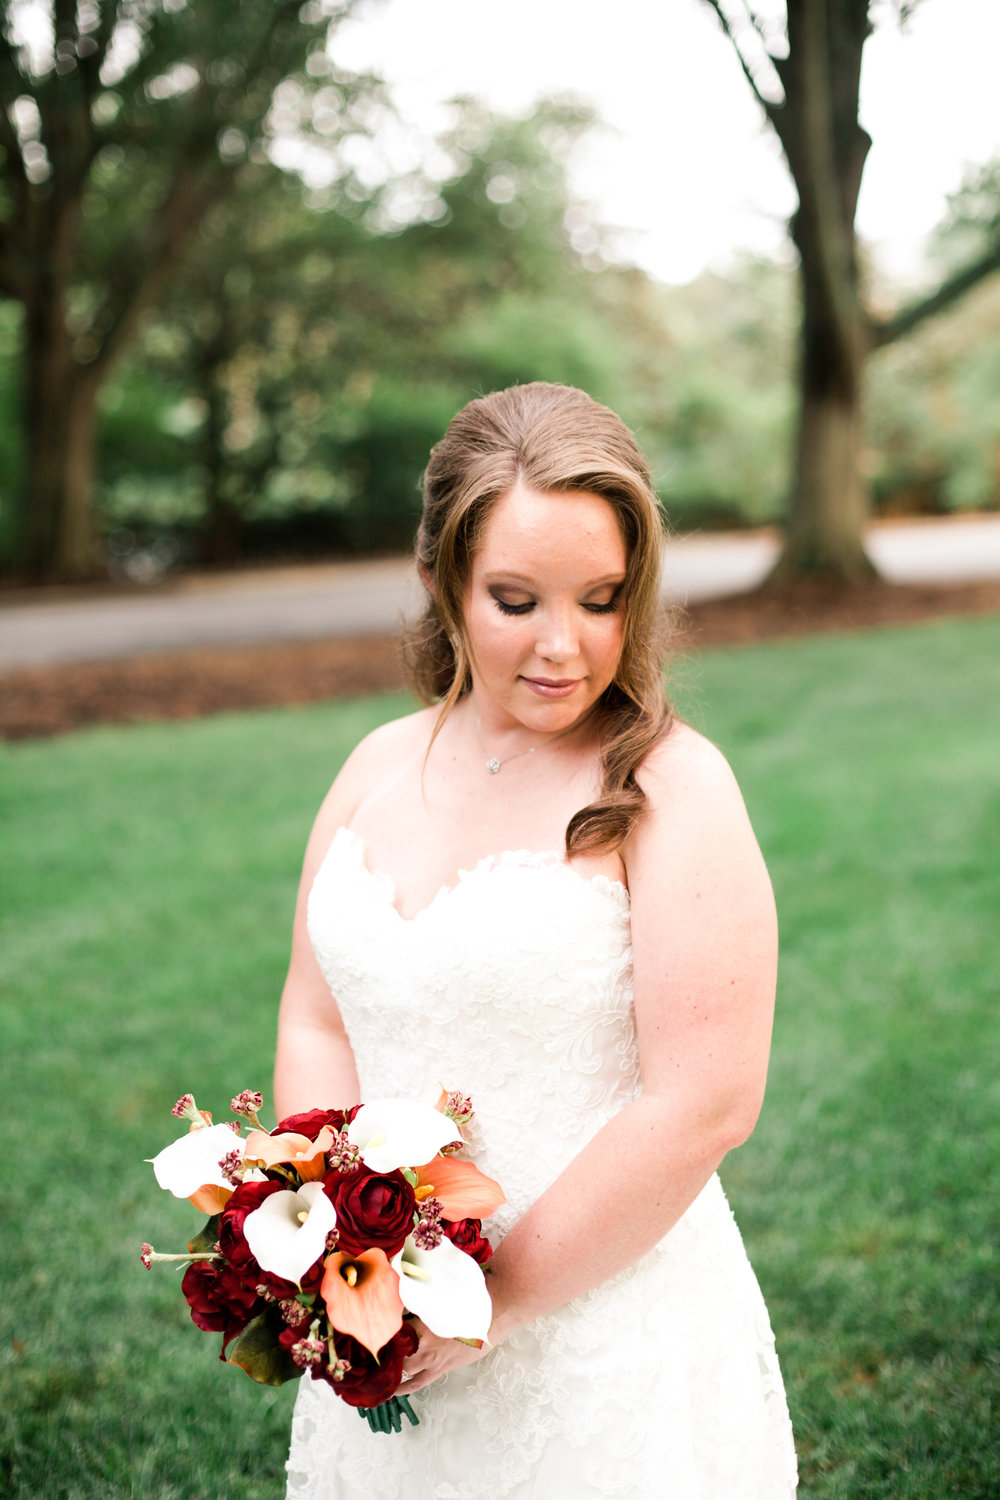 gabbie_bridal_poured_out_photography-53.jpg